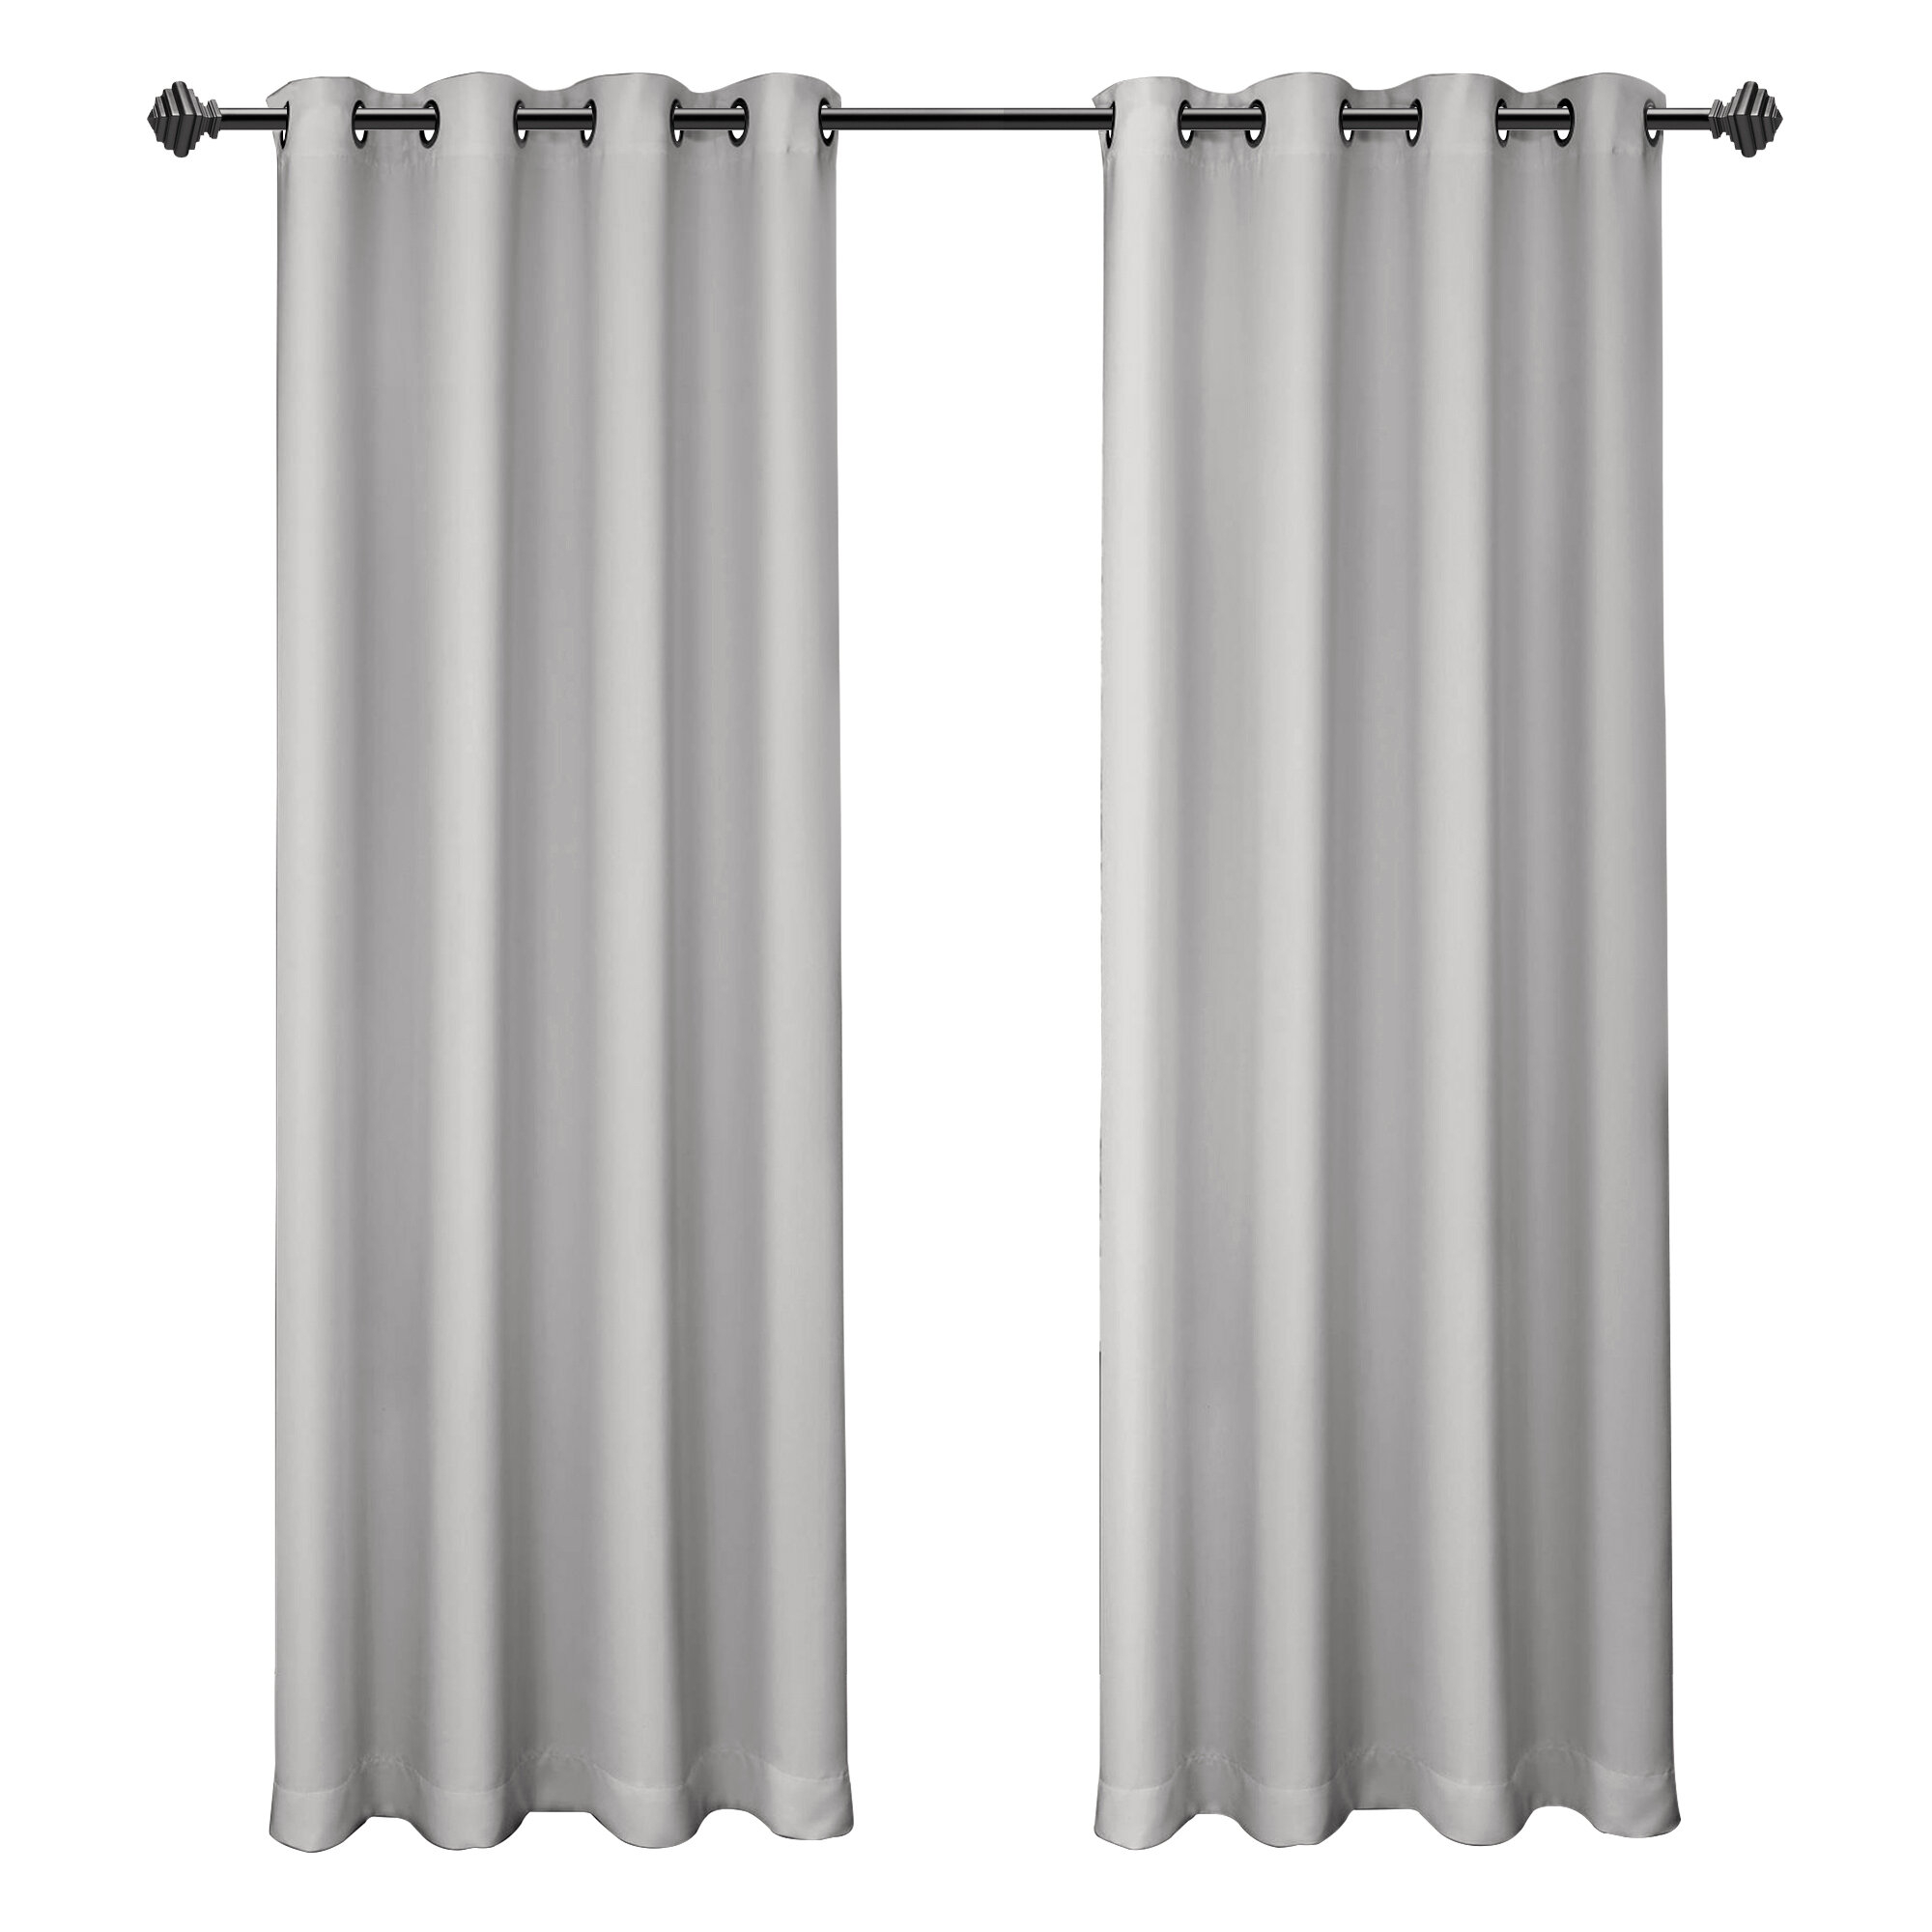 Siple Solid Blackout Thermal Insulated Grommet Single Curtain Panel With Regard To Superior Solid Insulated Thermal Blackout Grommet Curtain Panel Pairs (View 9 of 30)